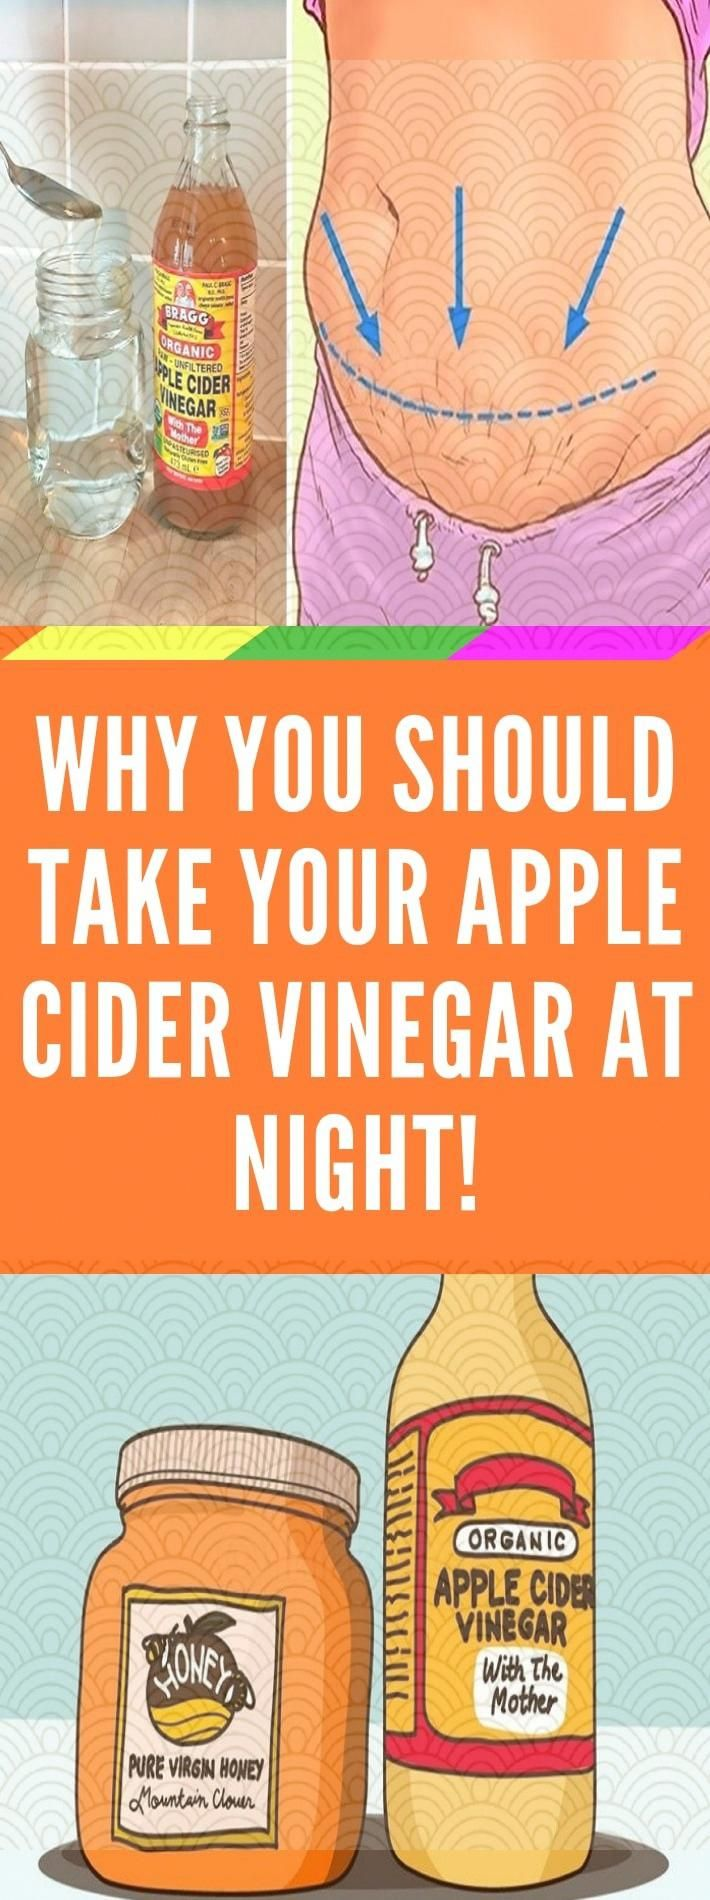 How Taking Apple Cider Vinegar at Night Offers Amazing Benefits? #applecidervinegarbenefits